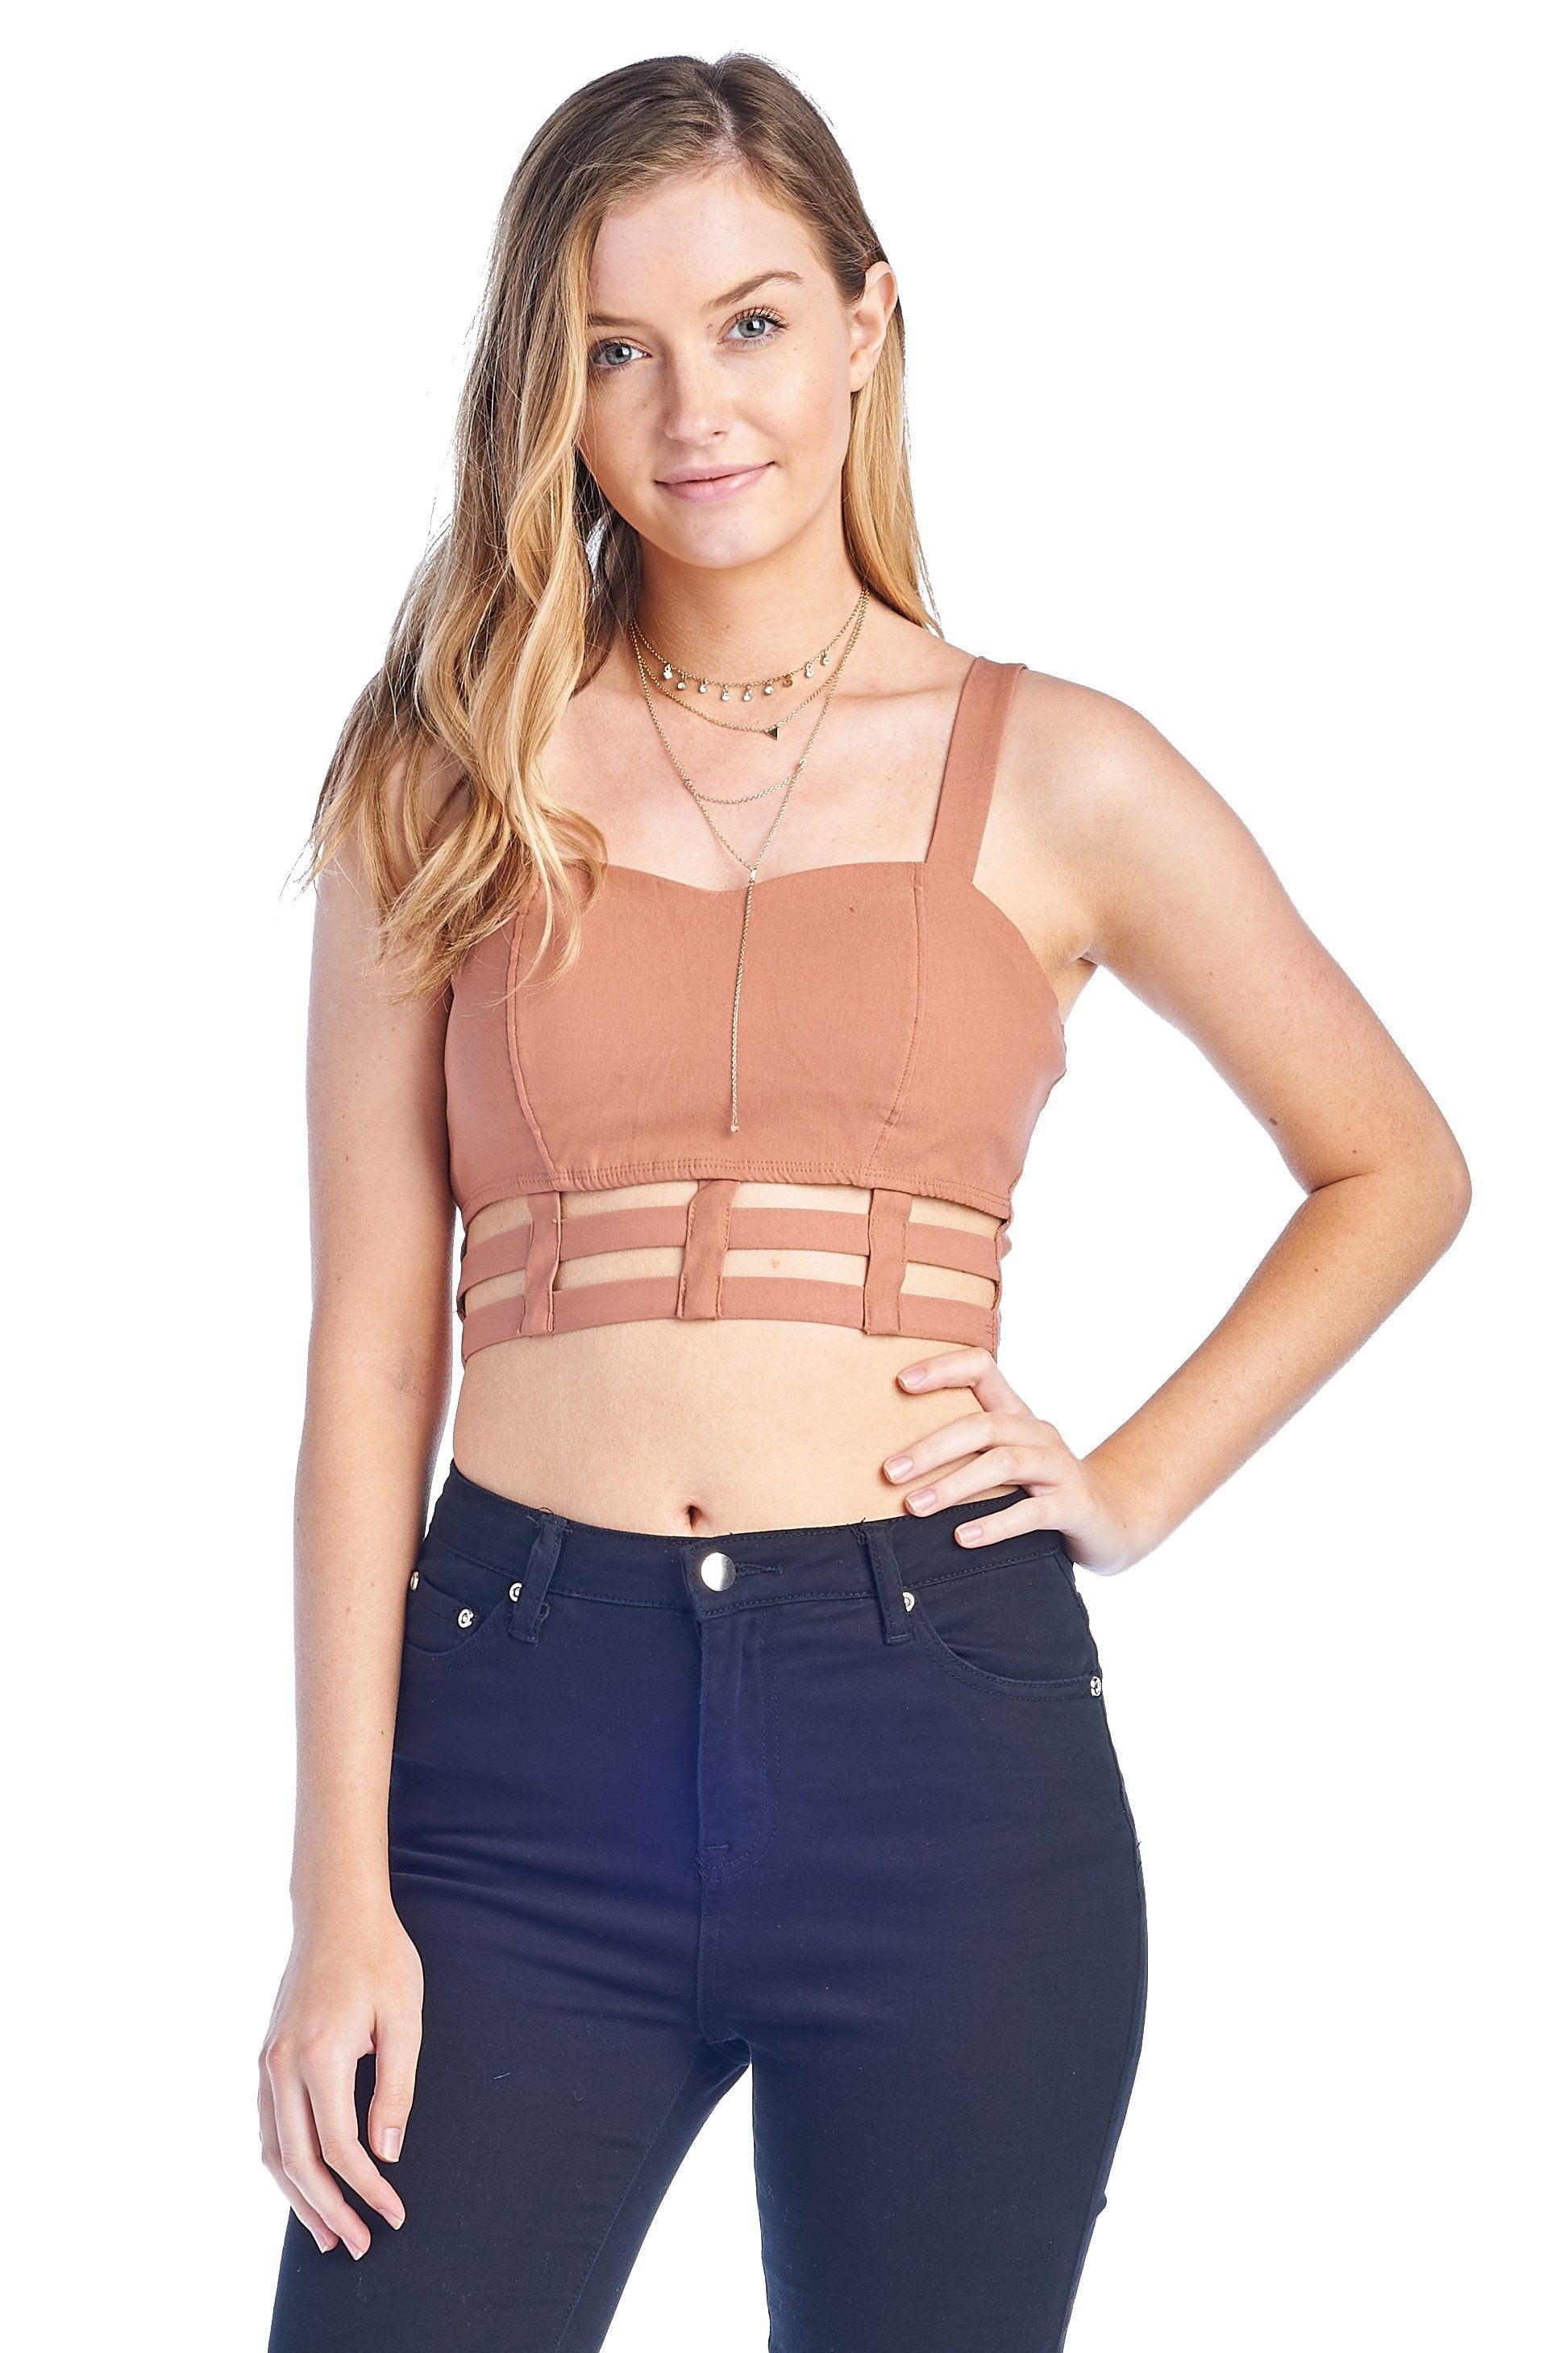 Women's Sleeveless Tank Caged Detail Stretch Sweet Heart Neckline Bustier Bralette Corset Crop Top